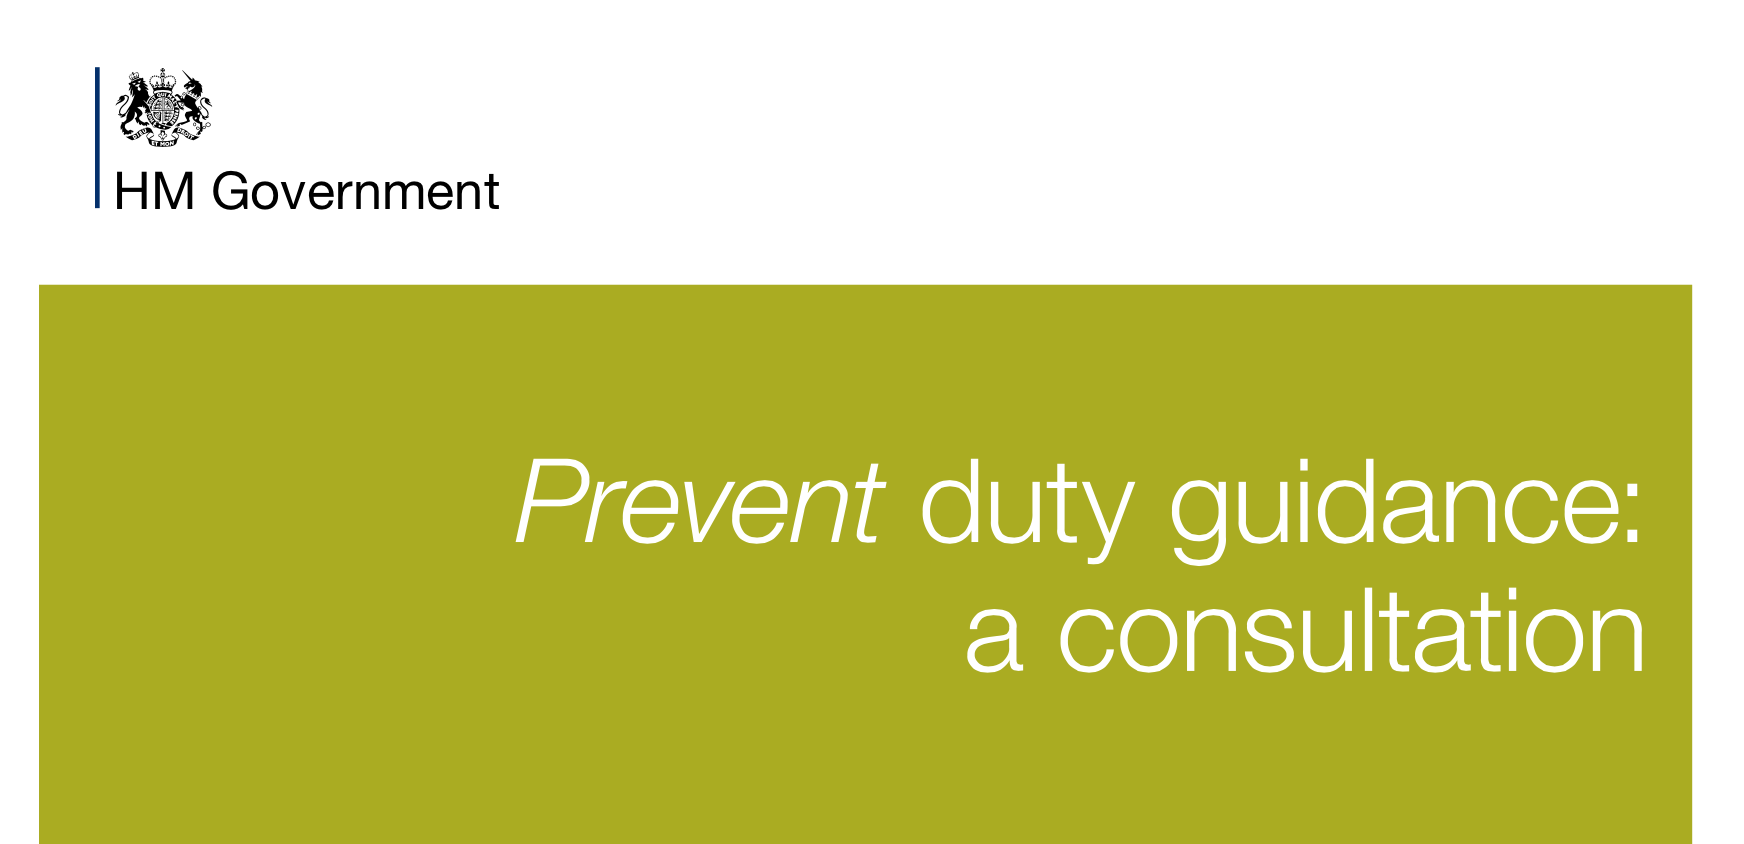 Prevent duty guidance: a consultation